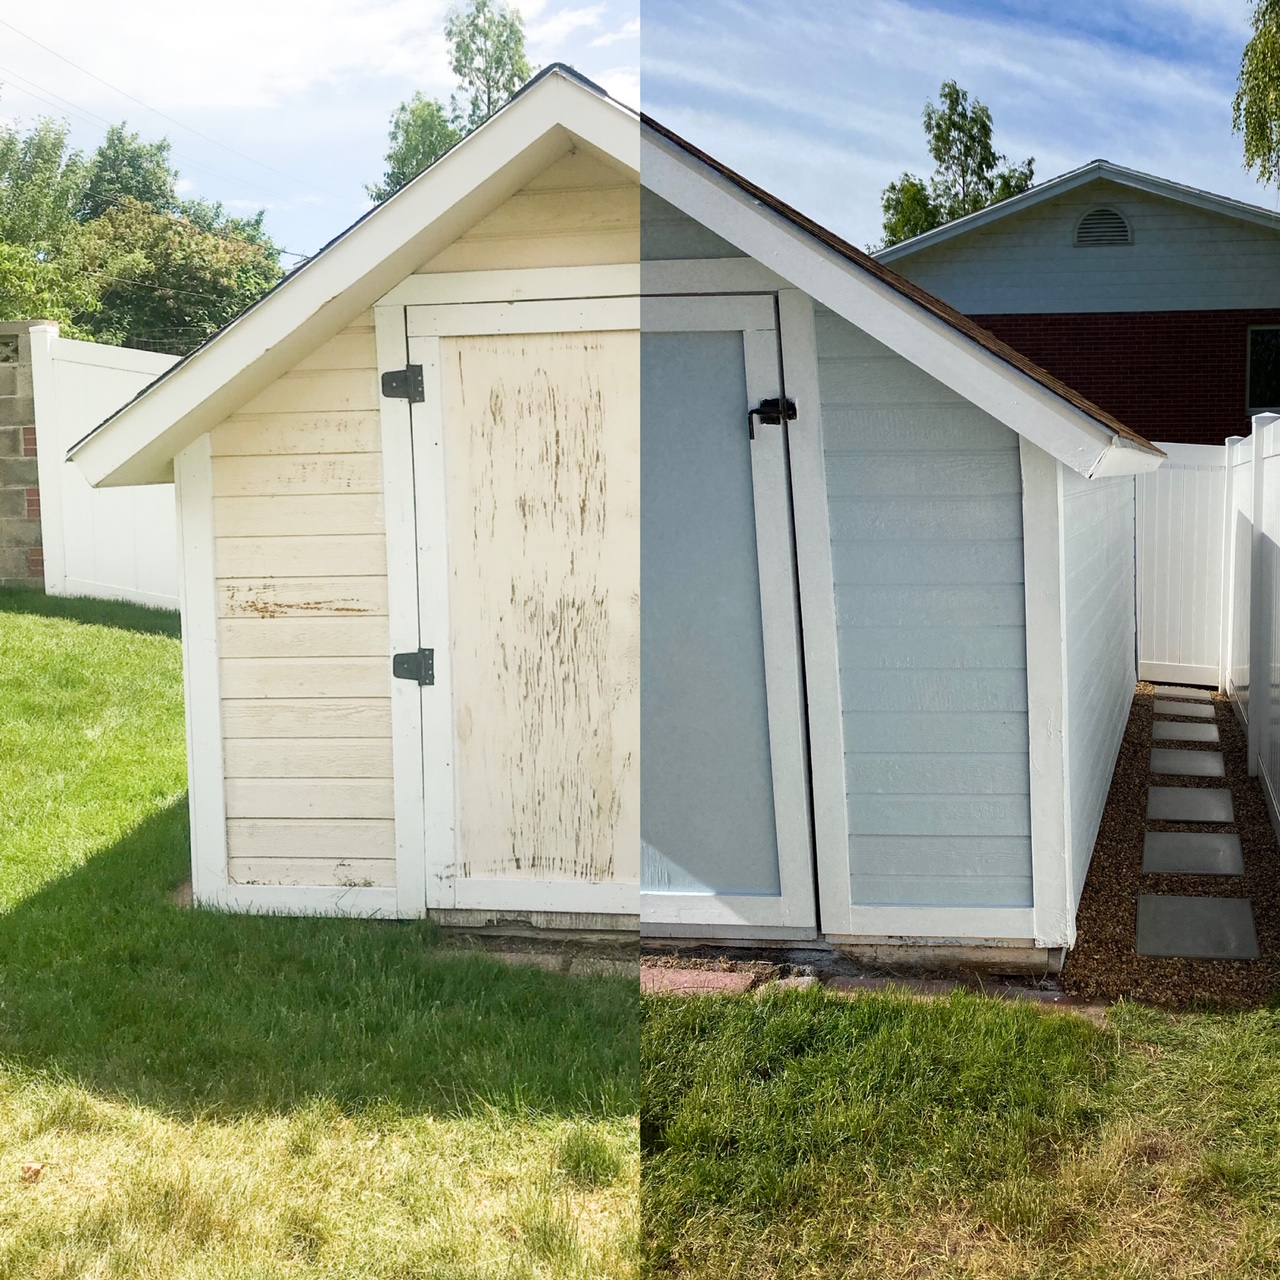 From Shack to Shed | Our Simple Shed Remodel